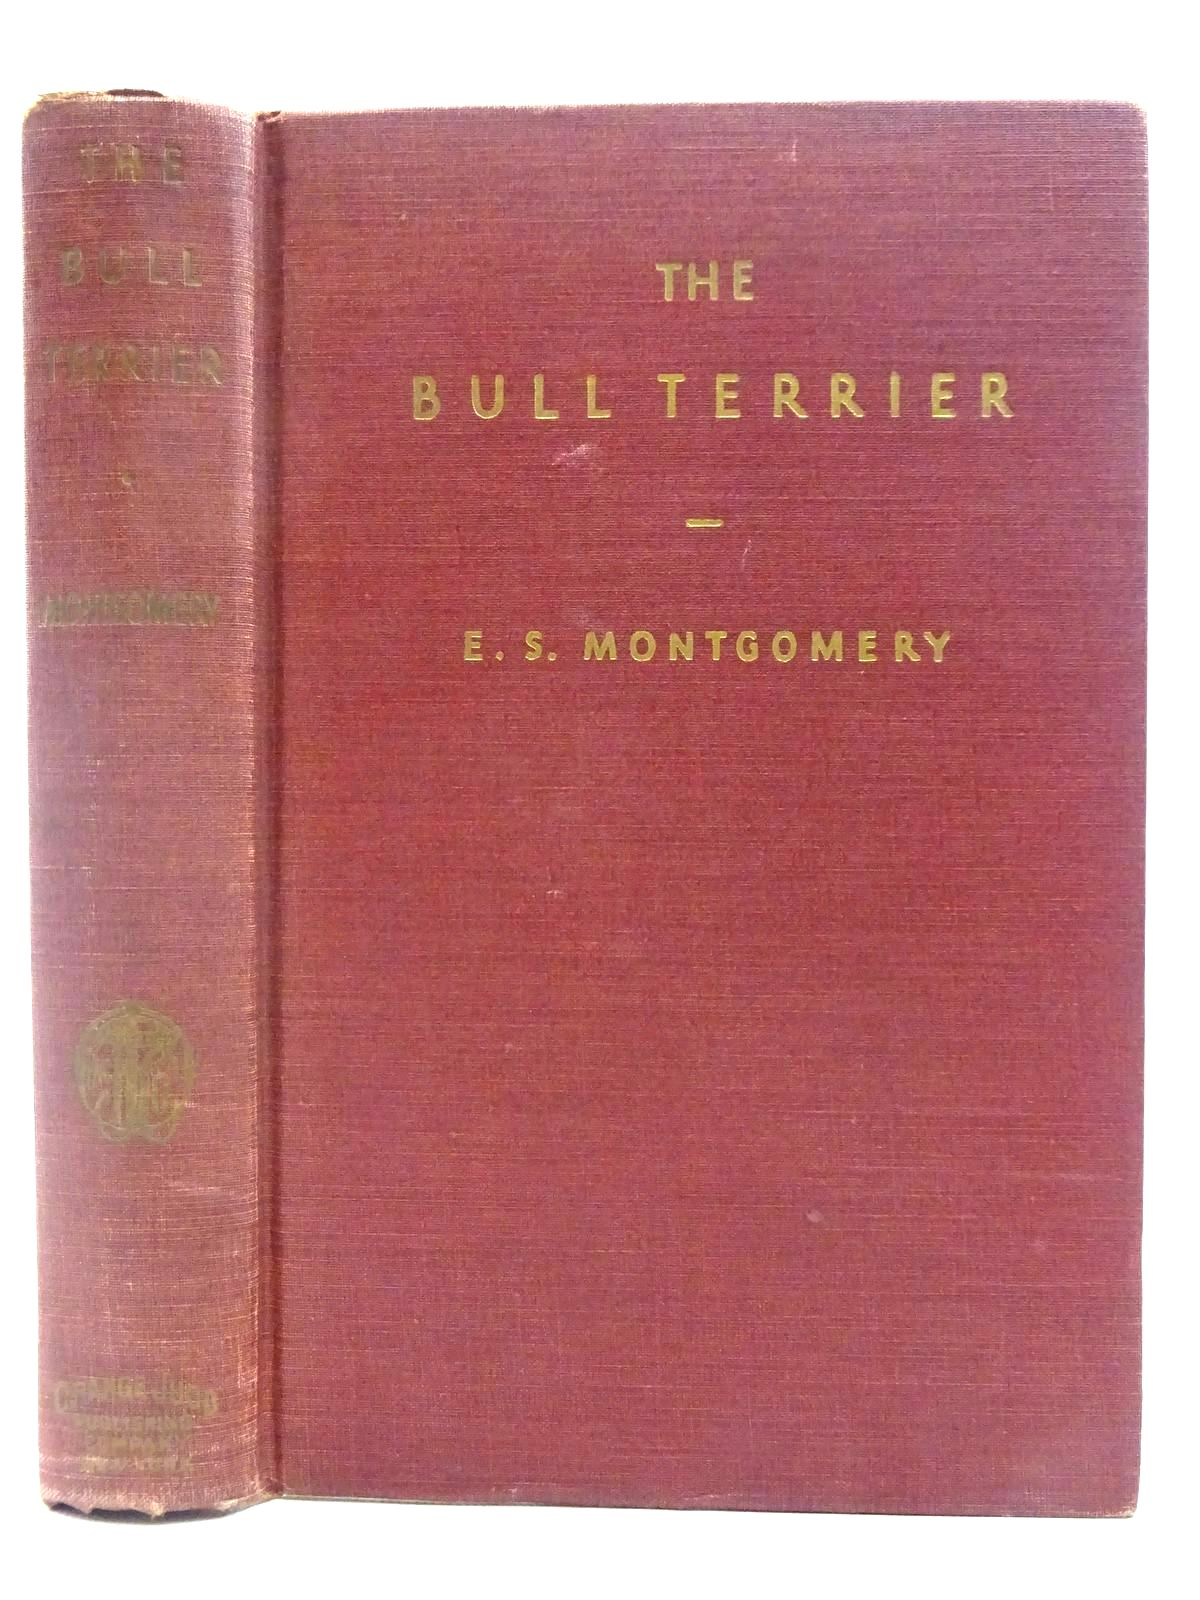 Photo of THE BULL TERRIER written by Montgomery, E.S. published by Orange Judd Publishing Company (STOCK CODE: 2128417)  for sale by Stella & Rose's Books